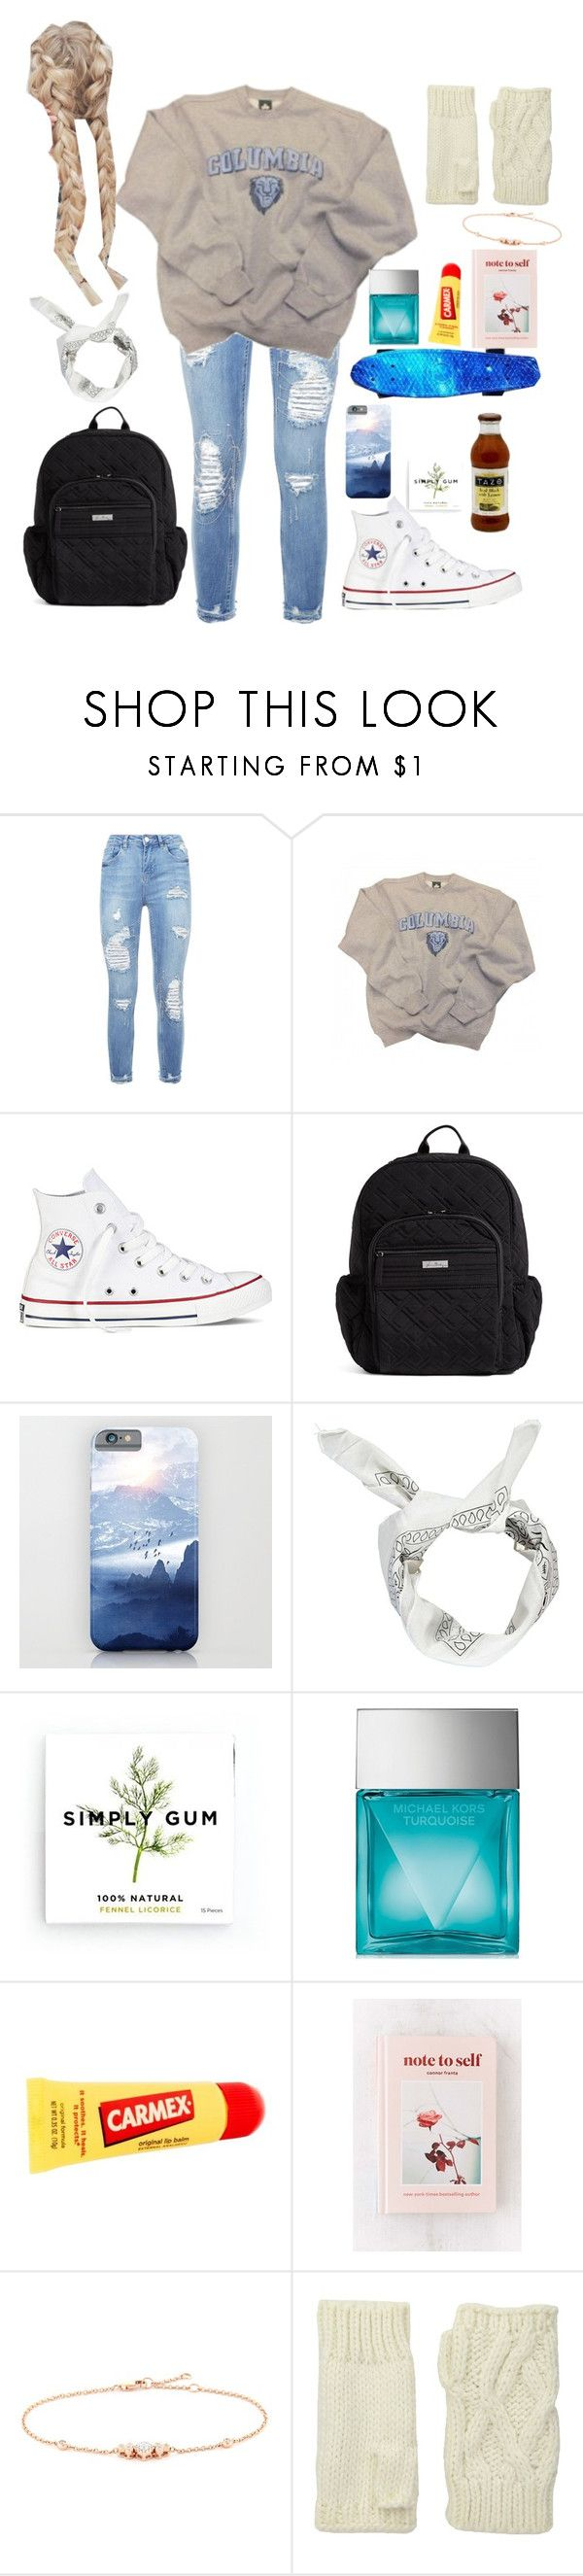 """School"" by haley-hetrick on Polyvore featuring Columbia, Converse, Vera Bradley, Boohoo, Simply Gum, Michael Kors, Carmex, Urban Outfitters, LC COLLECTION and San Diego Hat Co."